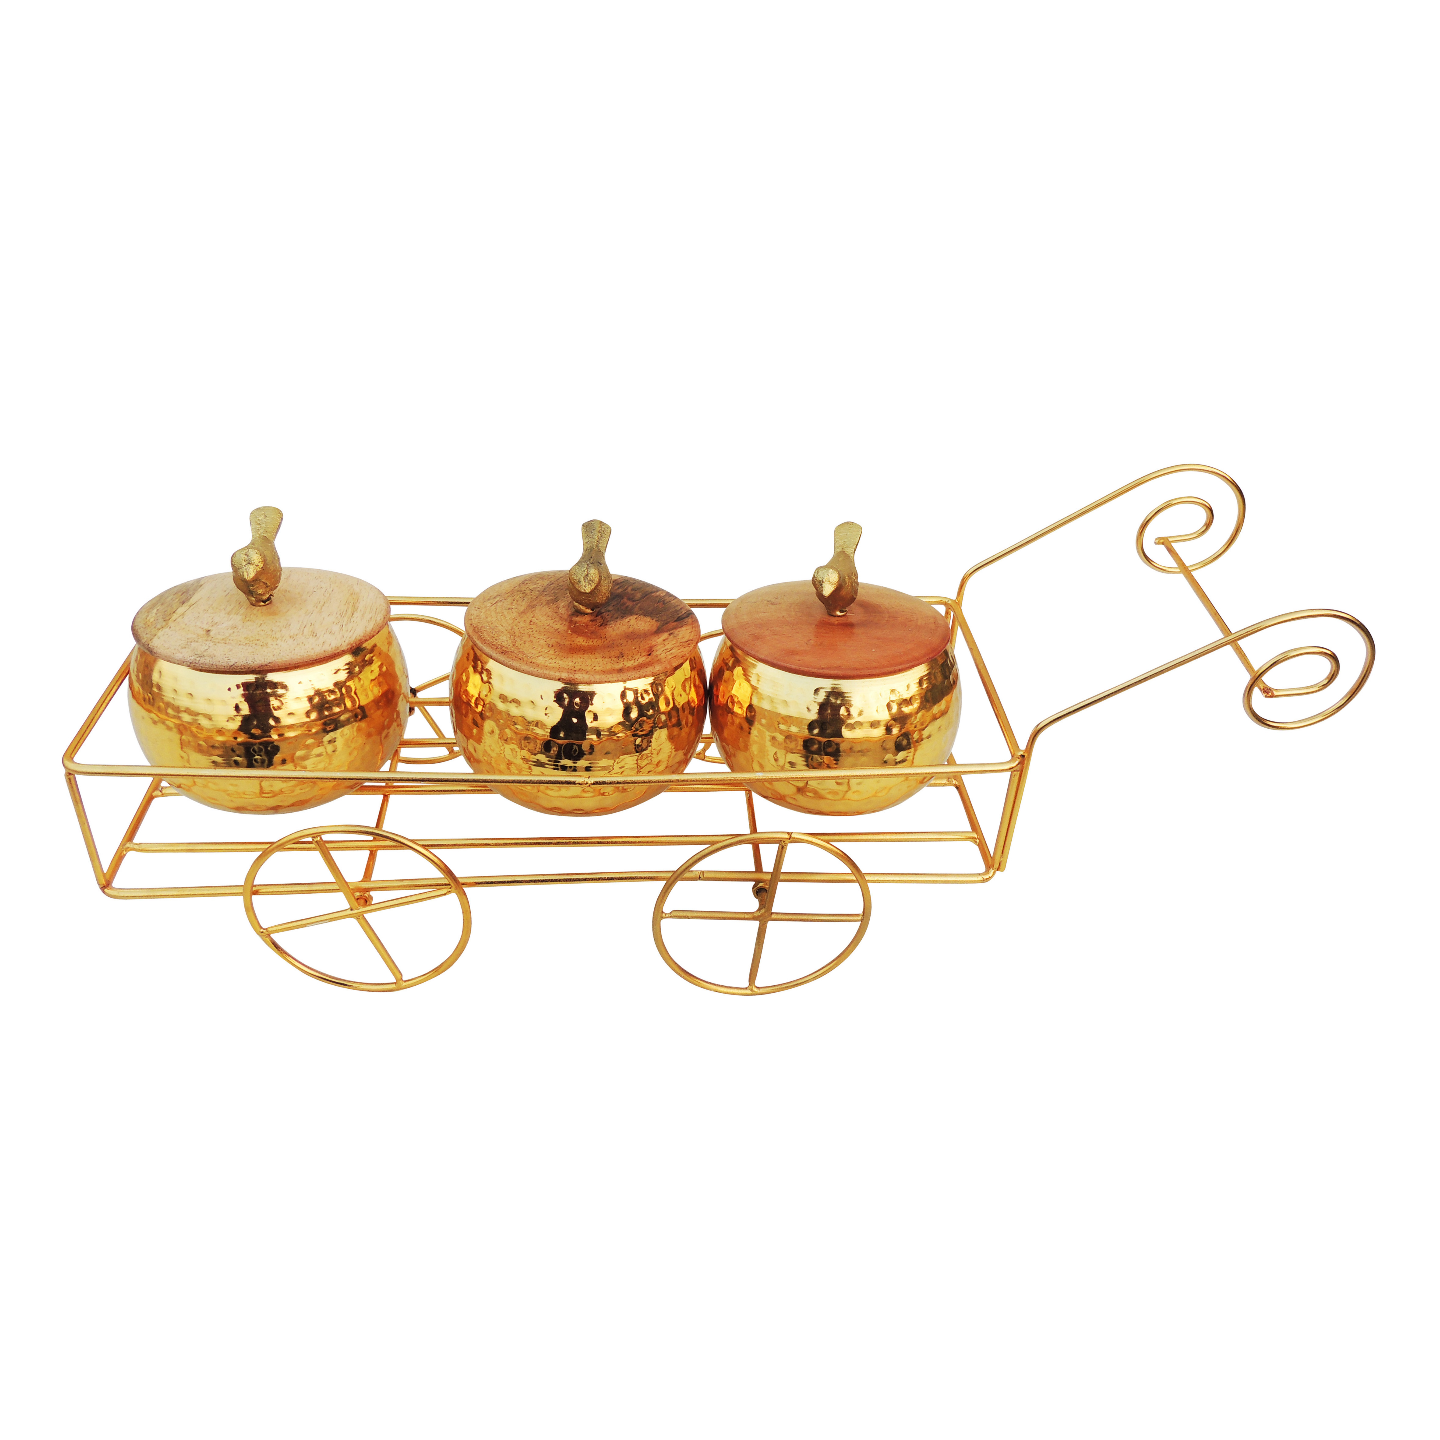 Decorative 3 Pc. Candy Box With Trolly For Diwali Gift - 17.5 Inch (I136 C)